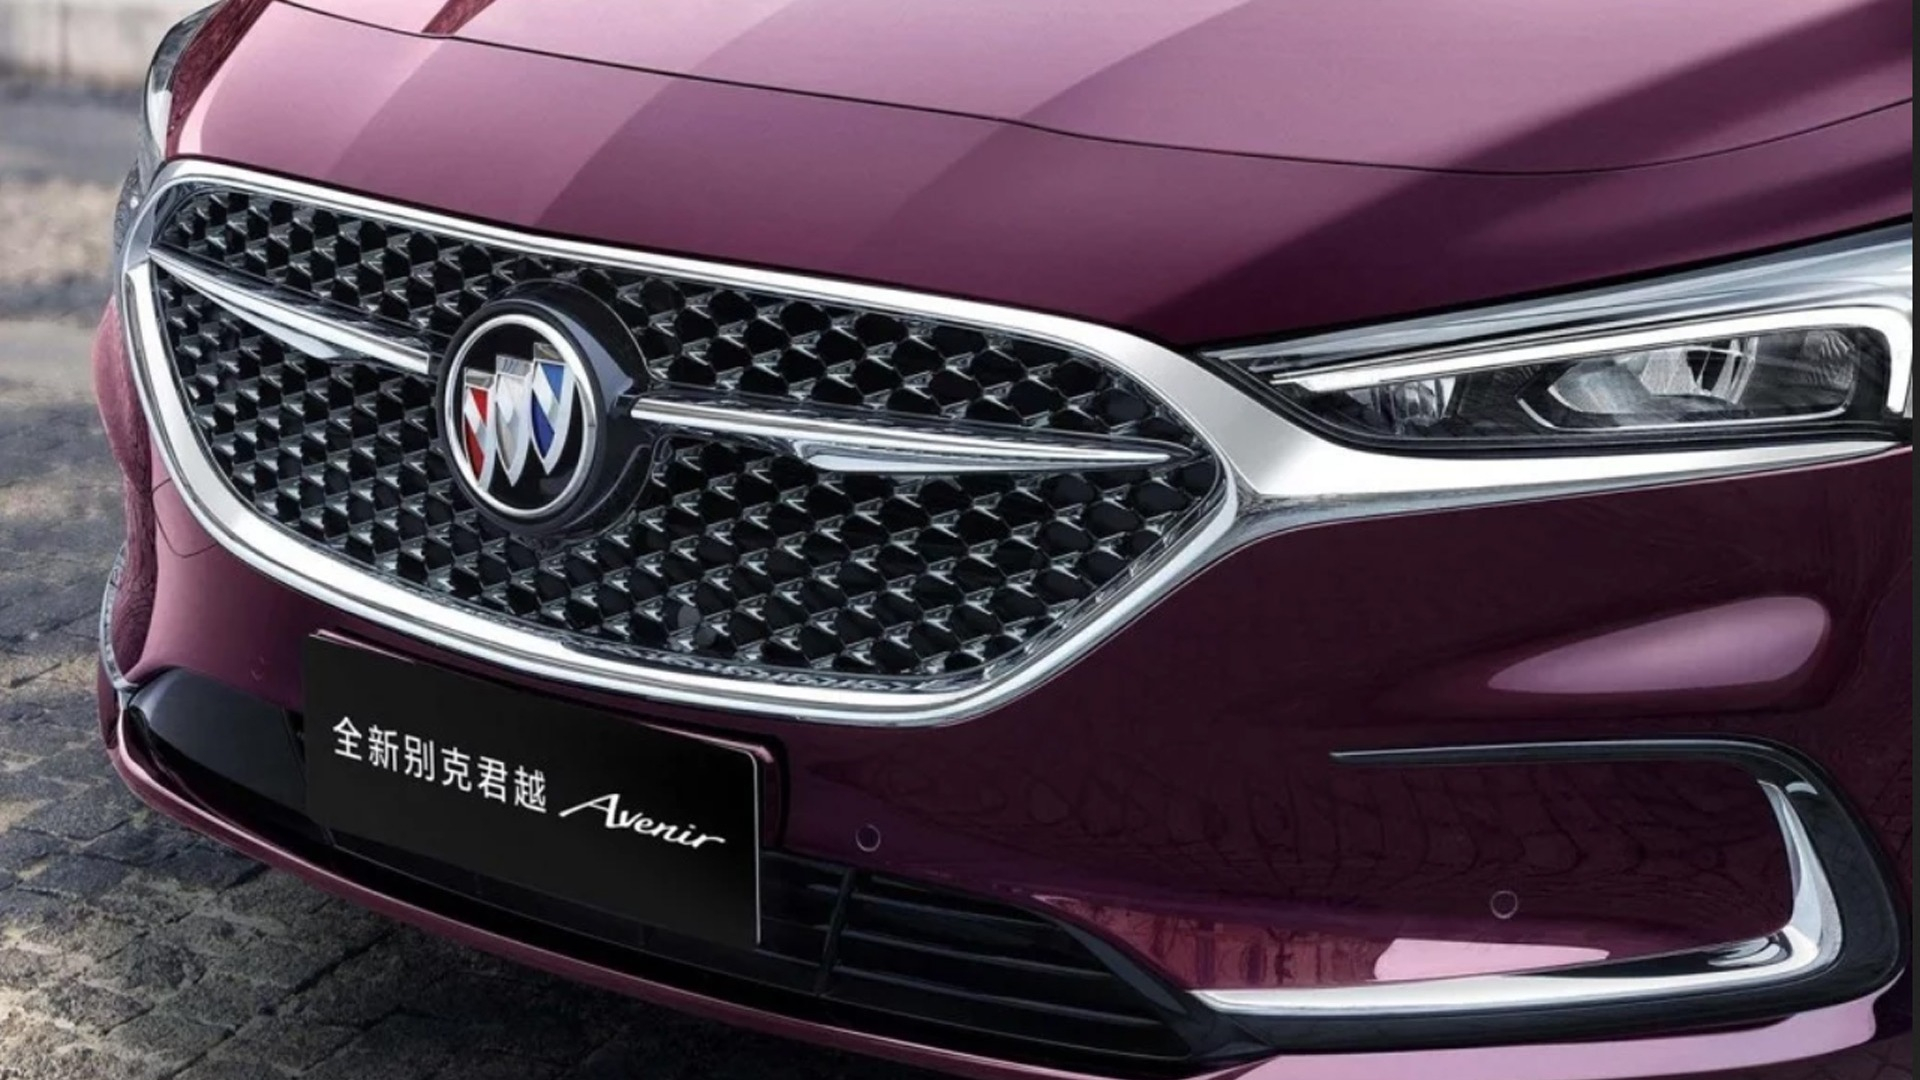 2020 Buick Lacrosse Made Handsome Just As It's Dropped In Us Picture Of A New 2022 Buick Lacrosse